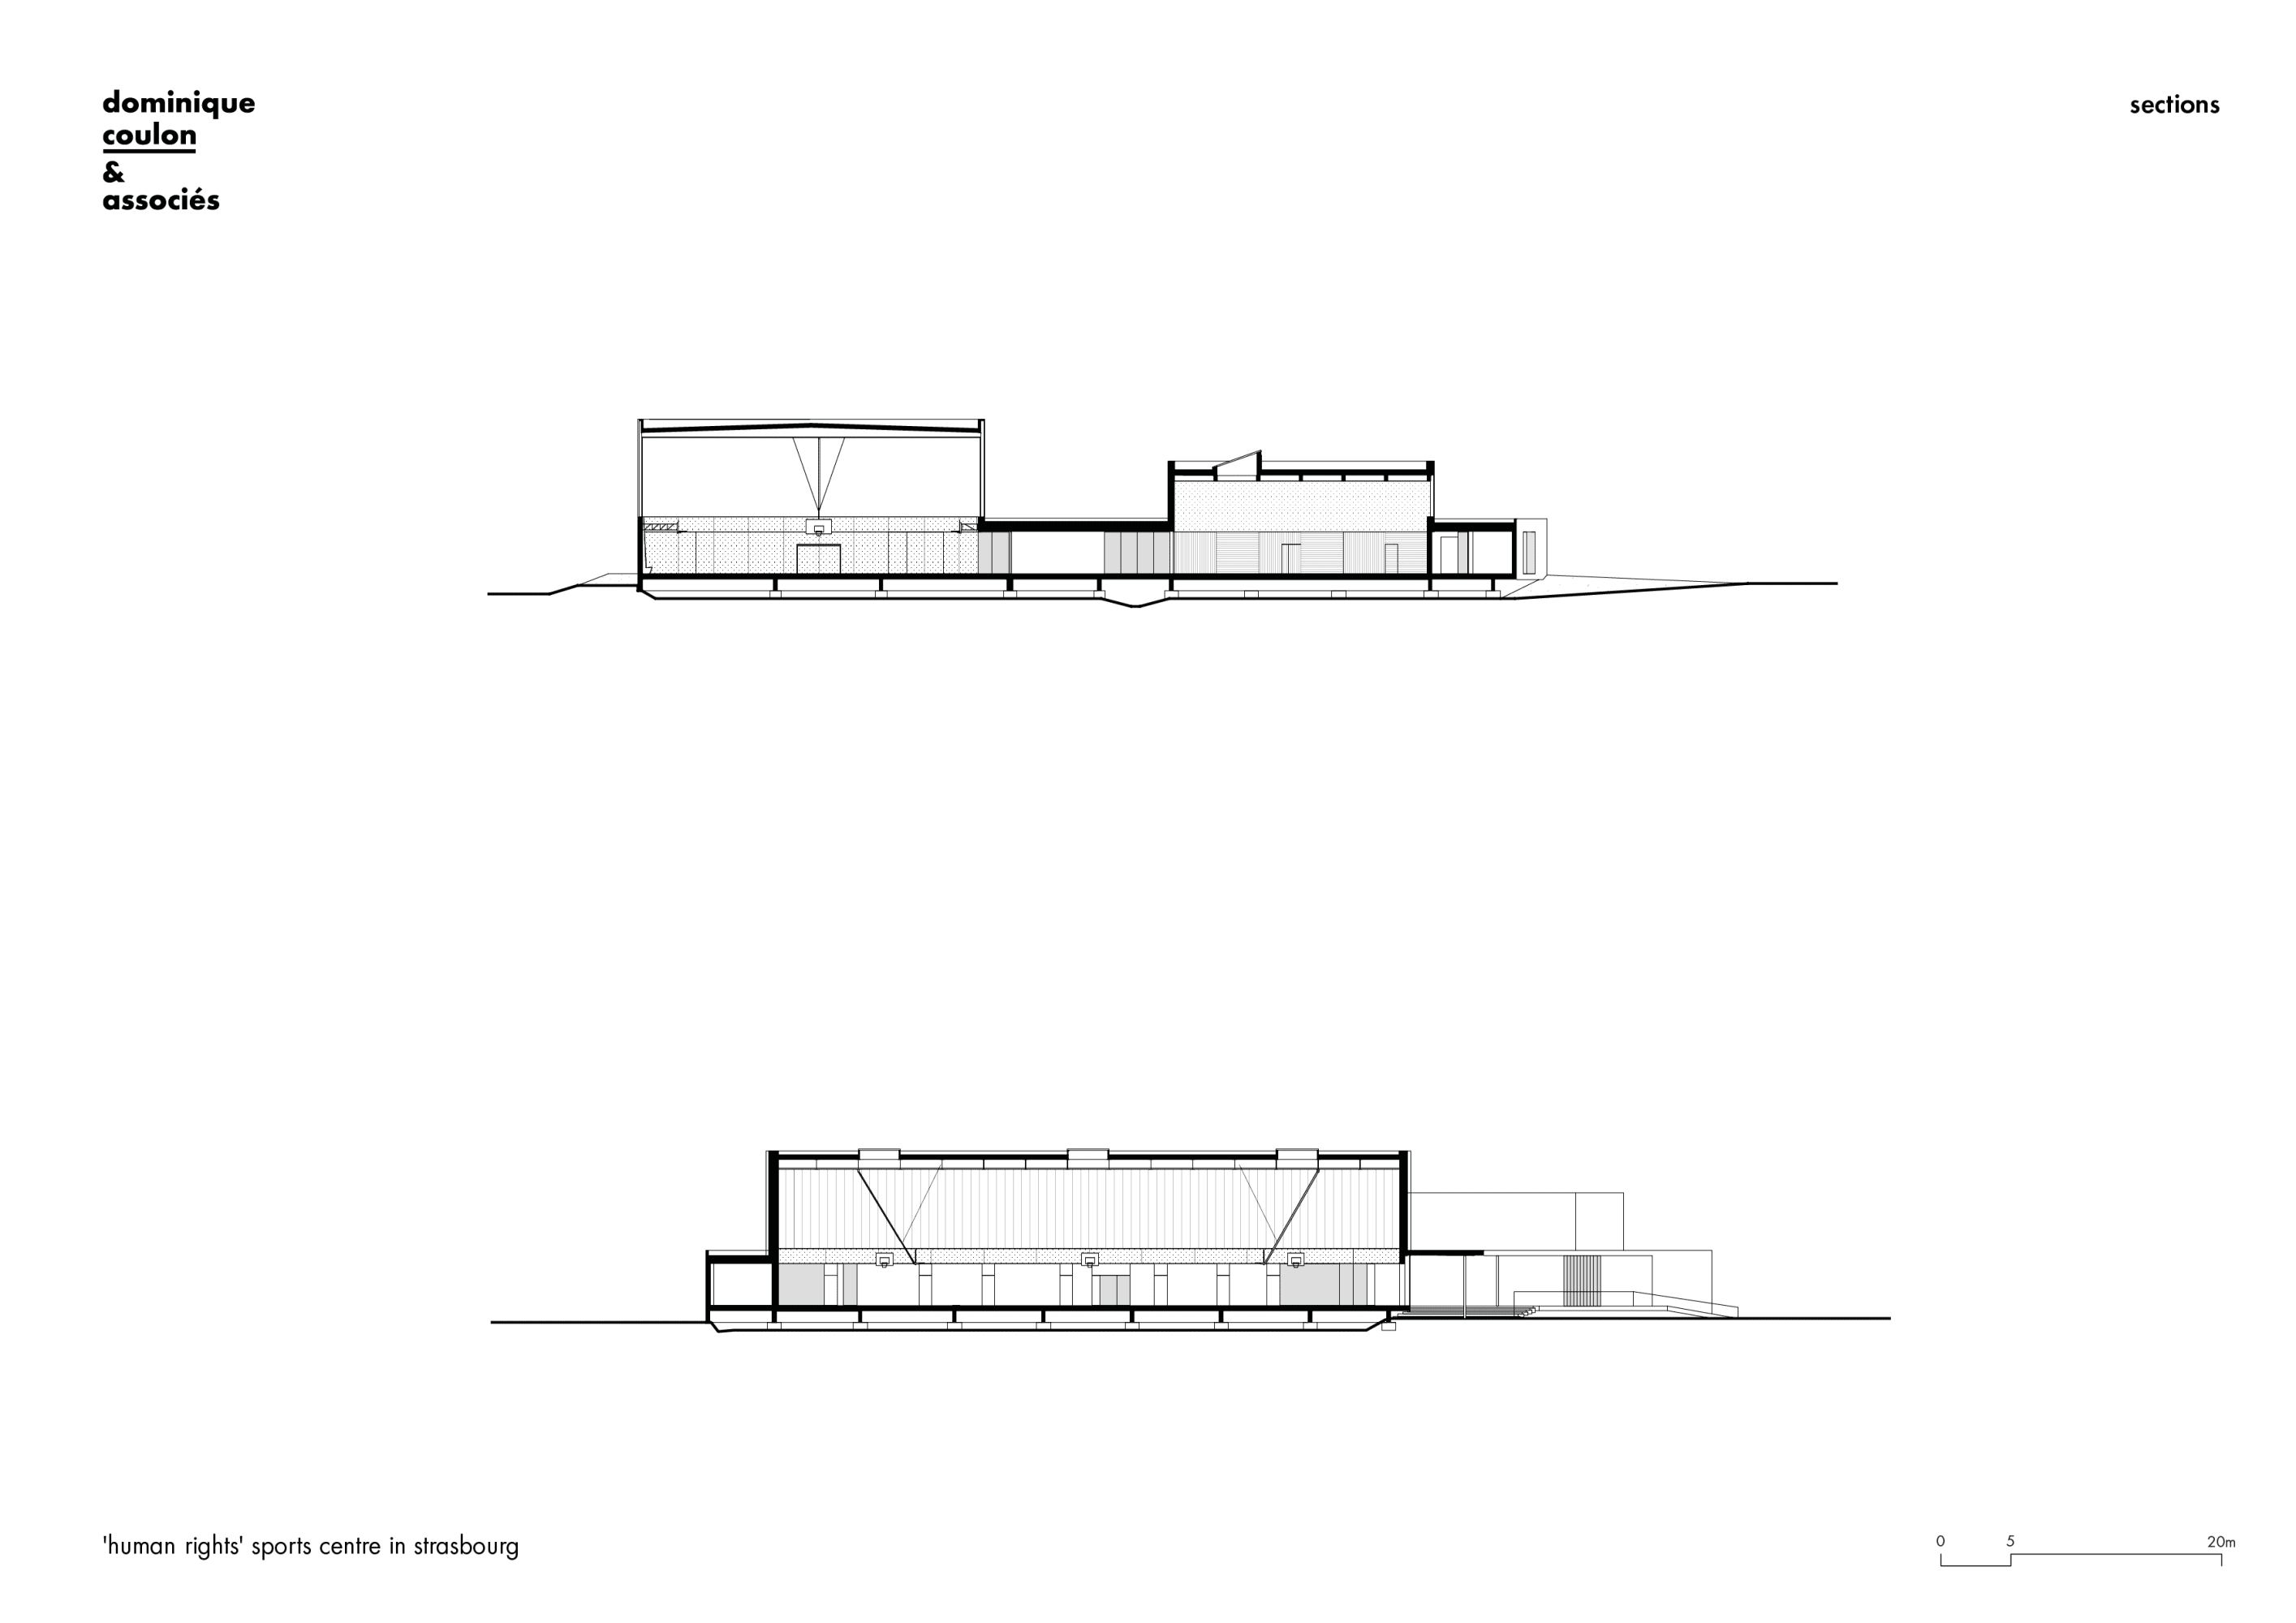 Dominique Coulon Associes Eugeni Pons David Romero Uzeda Human Rights Sports Centre In Strasbourg Divisare Strasbourg Sports Ground Floor Plan